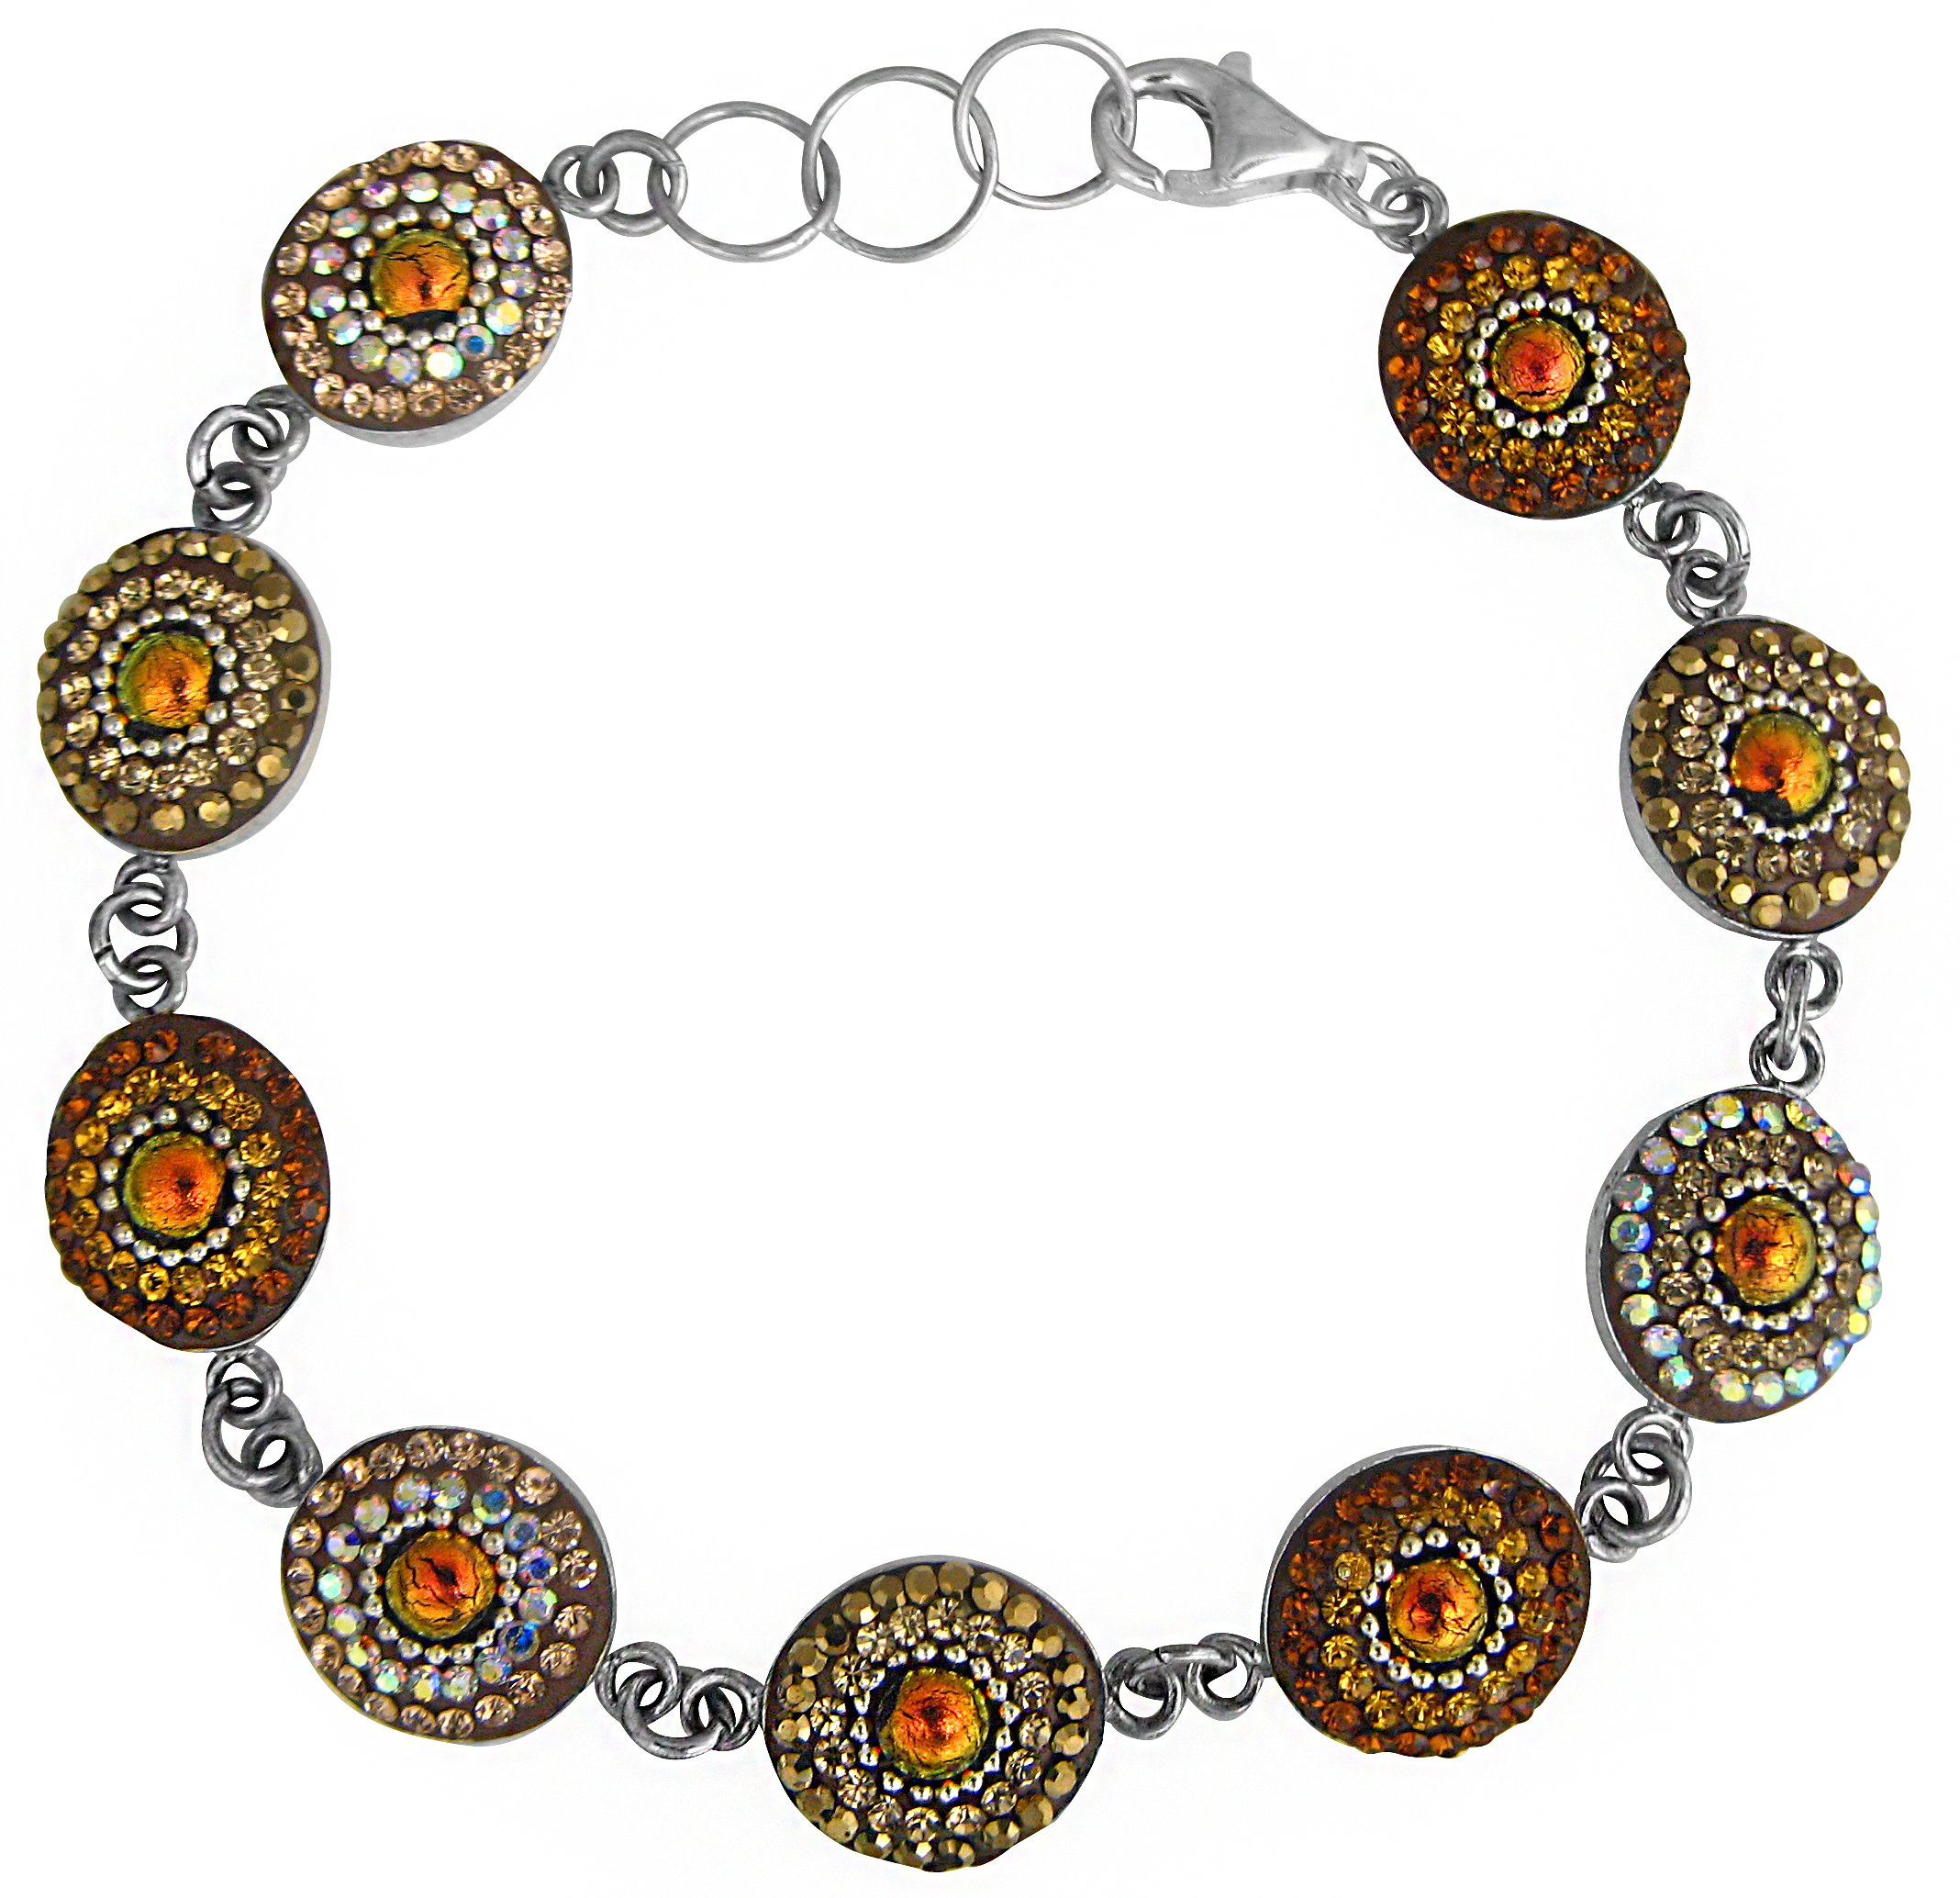 Mosaico Sterling Silver Dichroic Glass and Preciosa Czech Crystals Link Bracelet, 7.5'' … (Orange, Gold and Tan) by Dreamglass Mexico